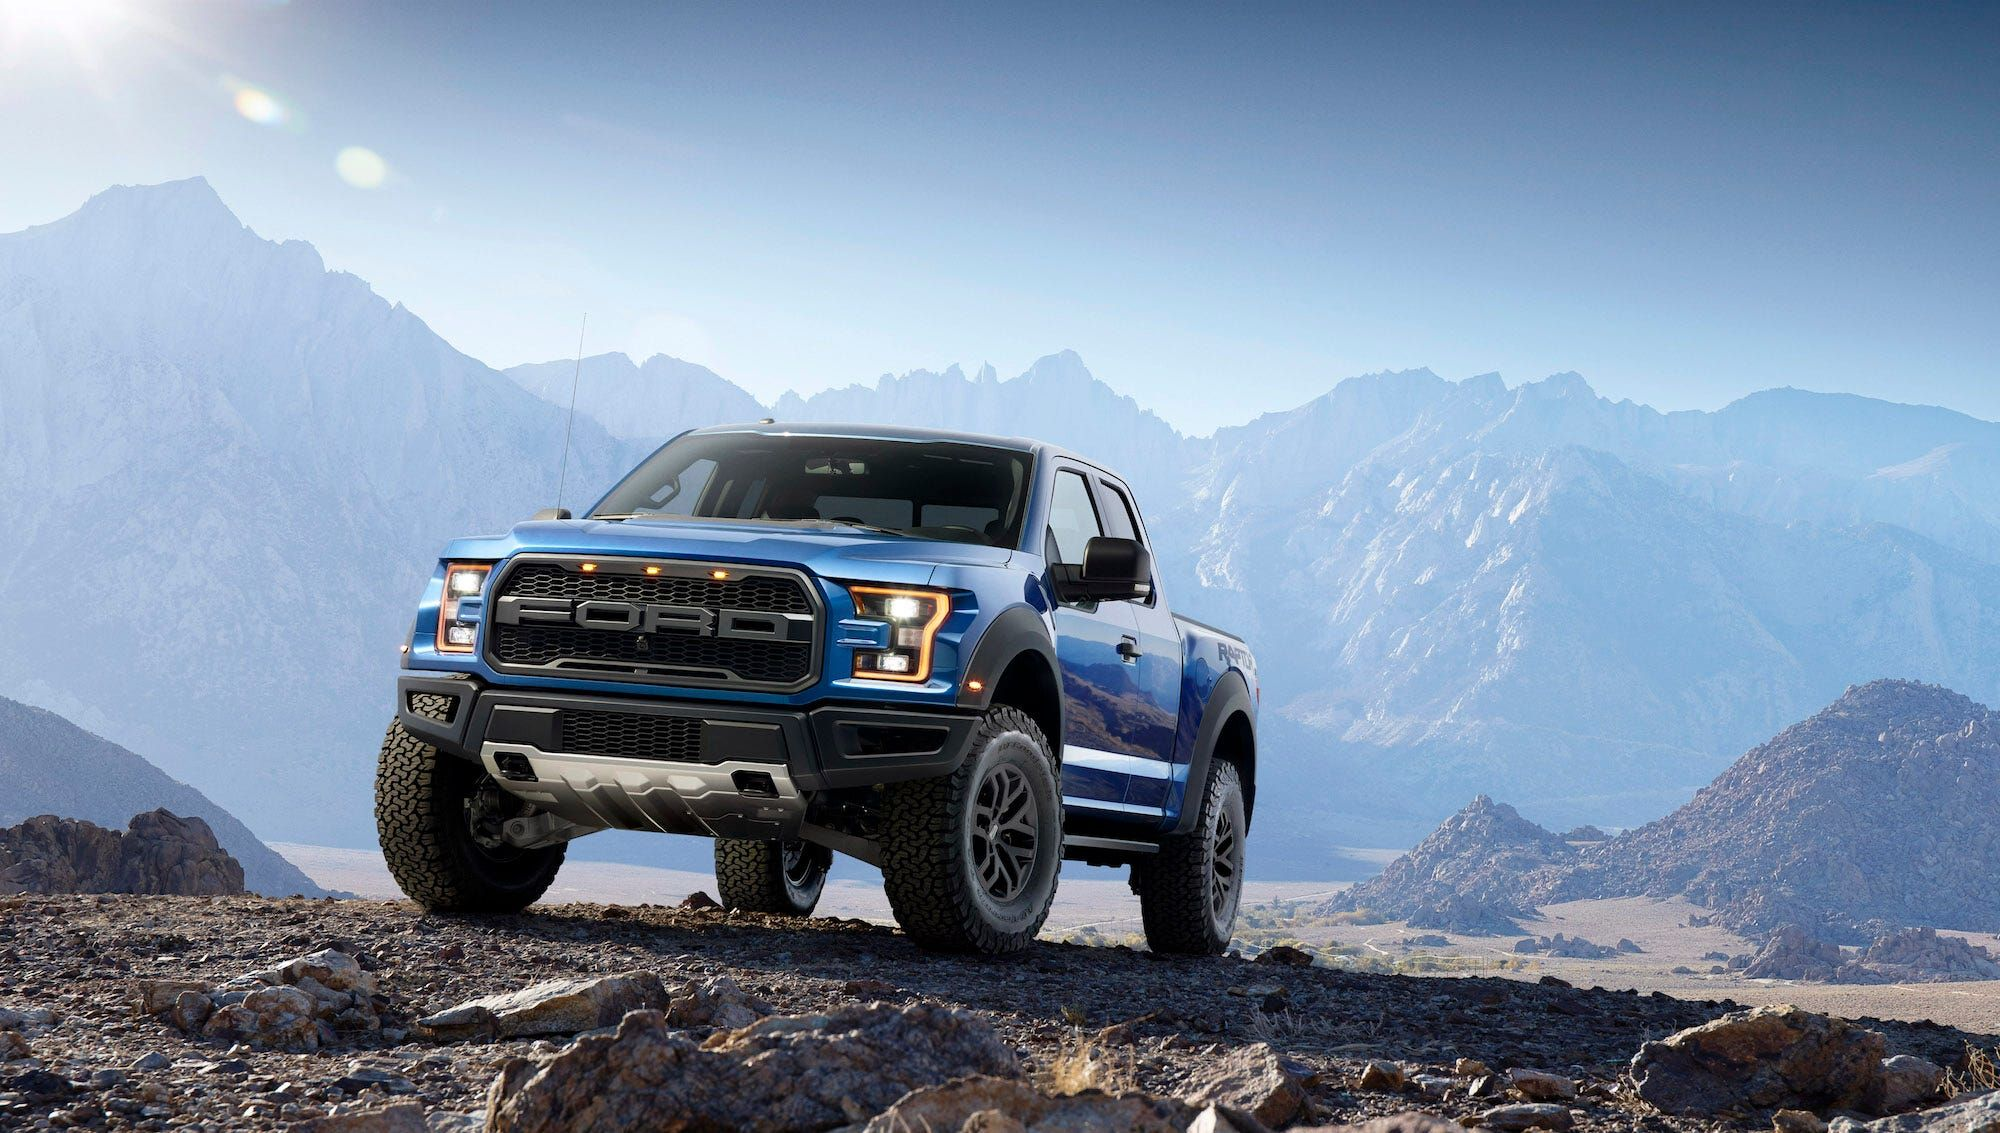 Kanye West Has A Fleet Of Ford Raptors That He Drives Around His 14 Million Ranch In Cody Wyoming Here S A Closer Loo In 2020 Ford Raptor Ford Raptor Truck Ford F150